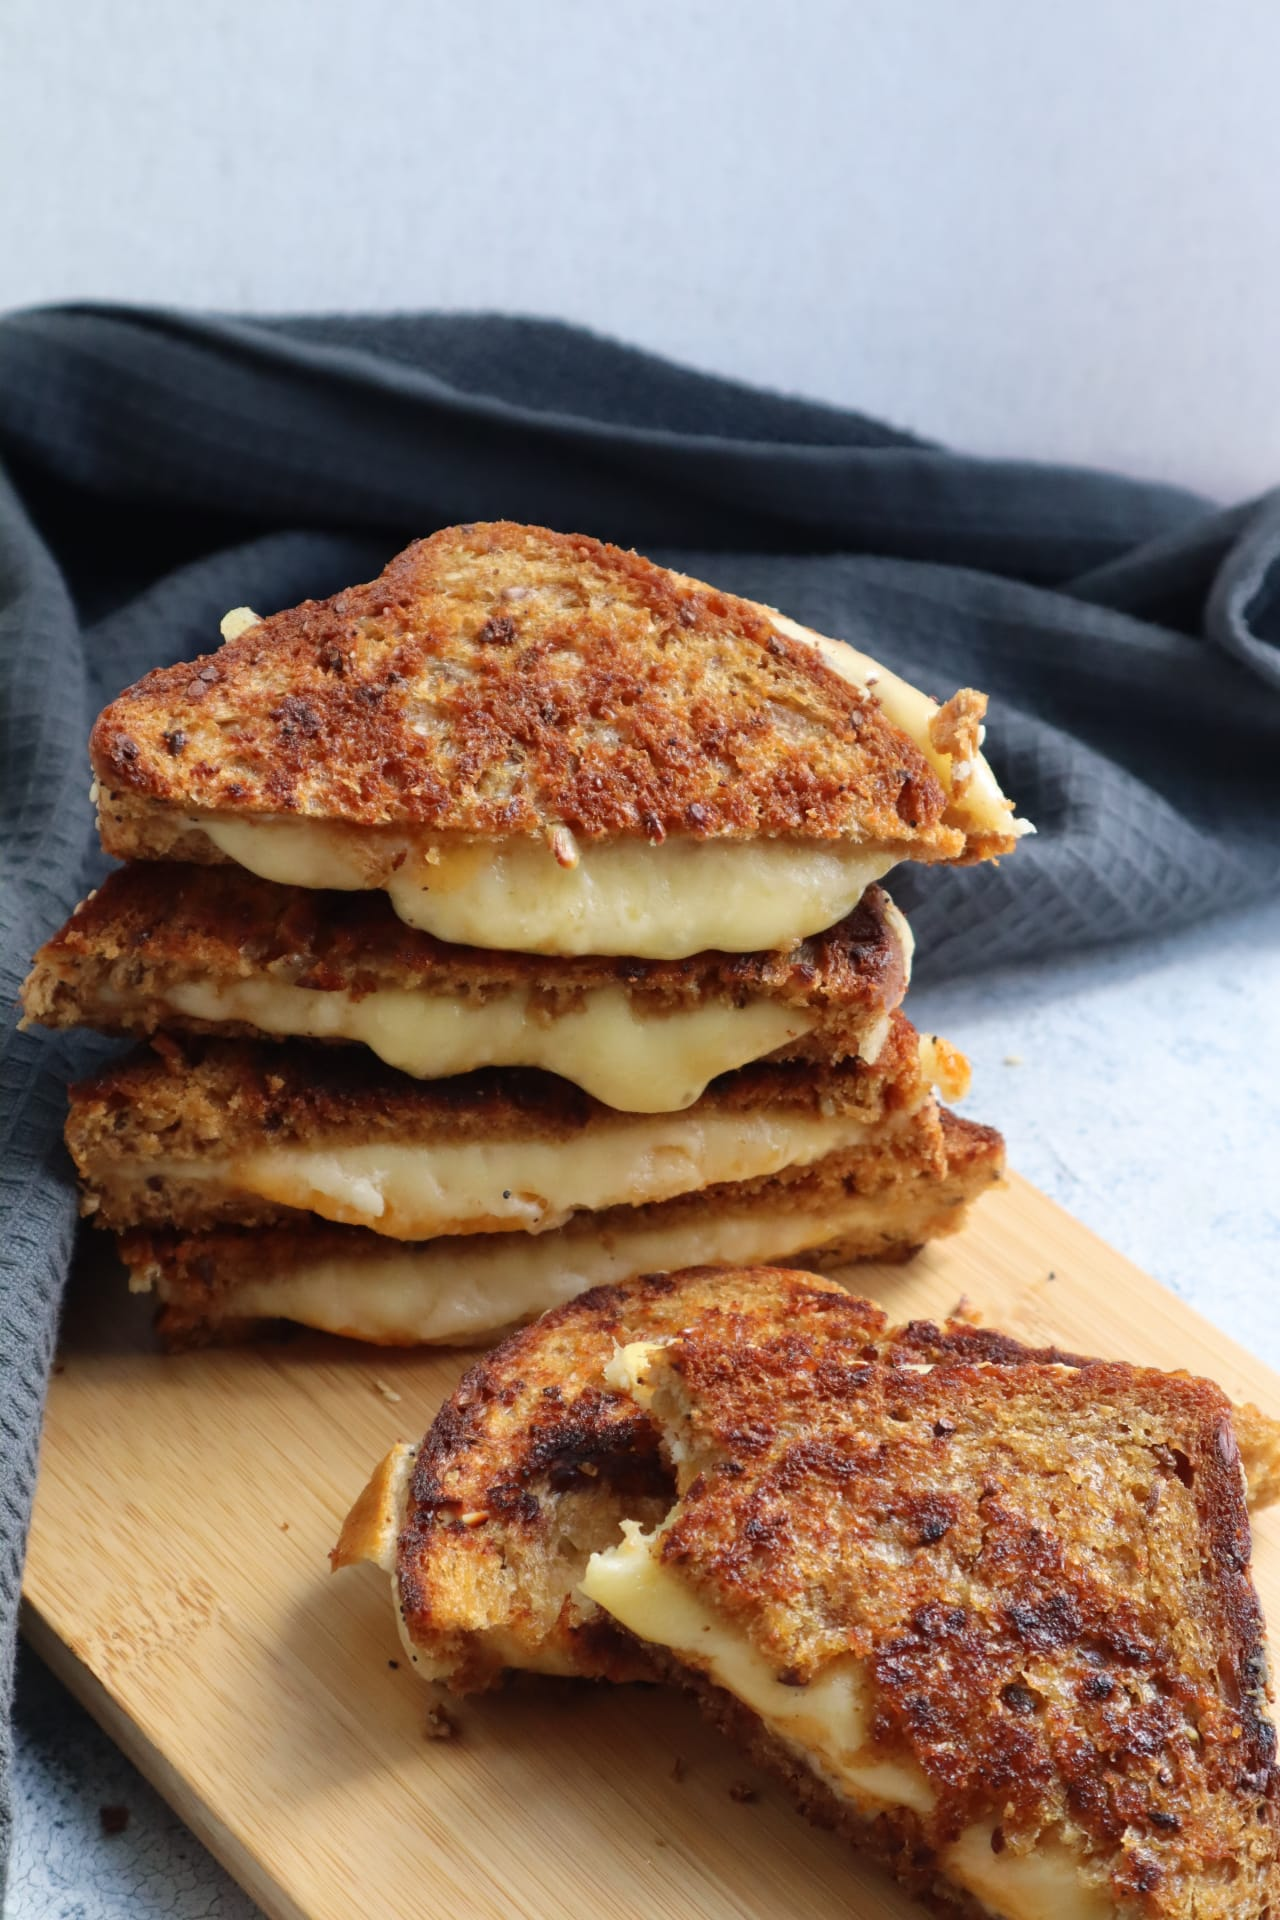 STOVE TOP GRILLED CHEESE